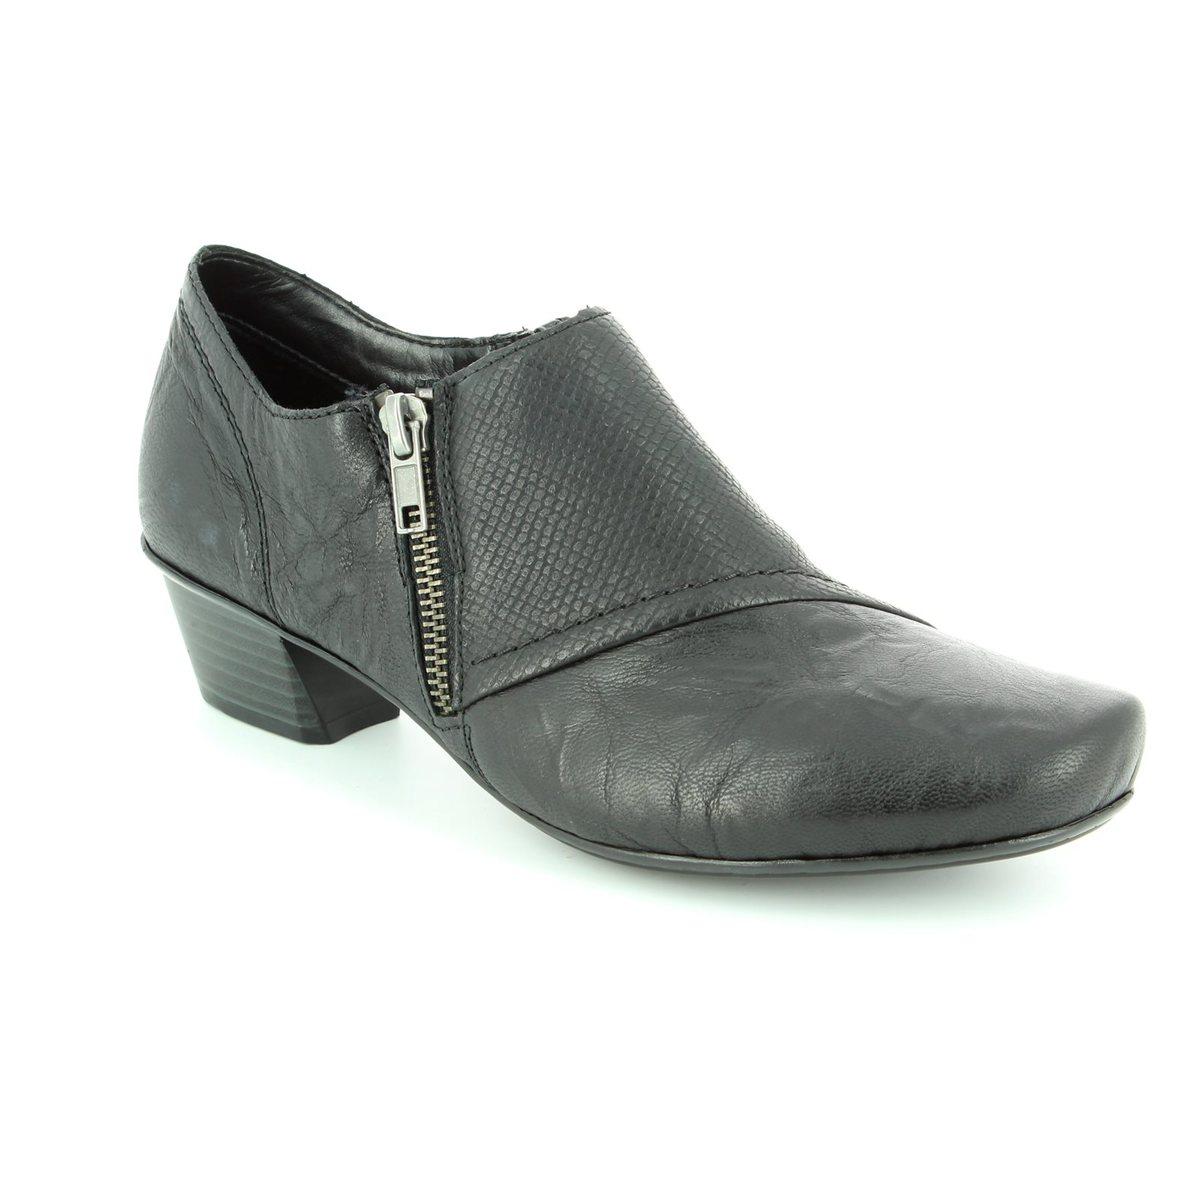 View all ladies footwear Browse our extensive range of ladies casual boots from all your favourite brands. The big brands on offer include Karrimor, Kangol, Sketchers, Miso, Firetrap, Kickers and many more. These womens boots are both fashionable and practical with amazing low prices.